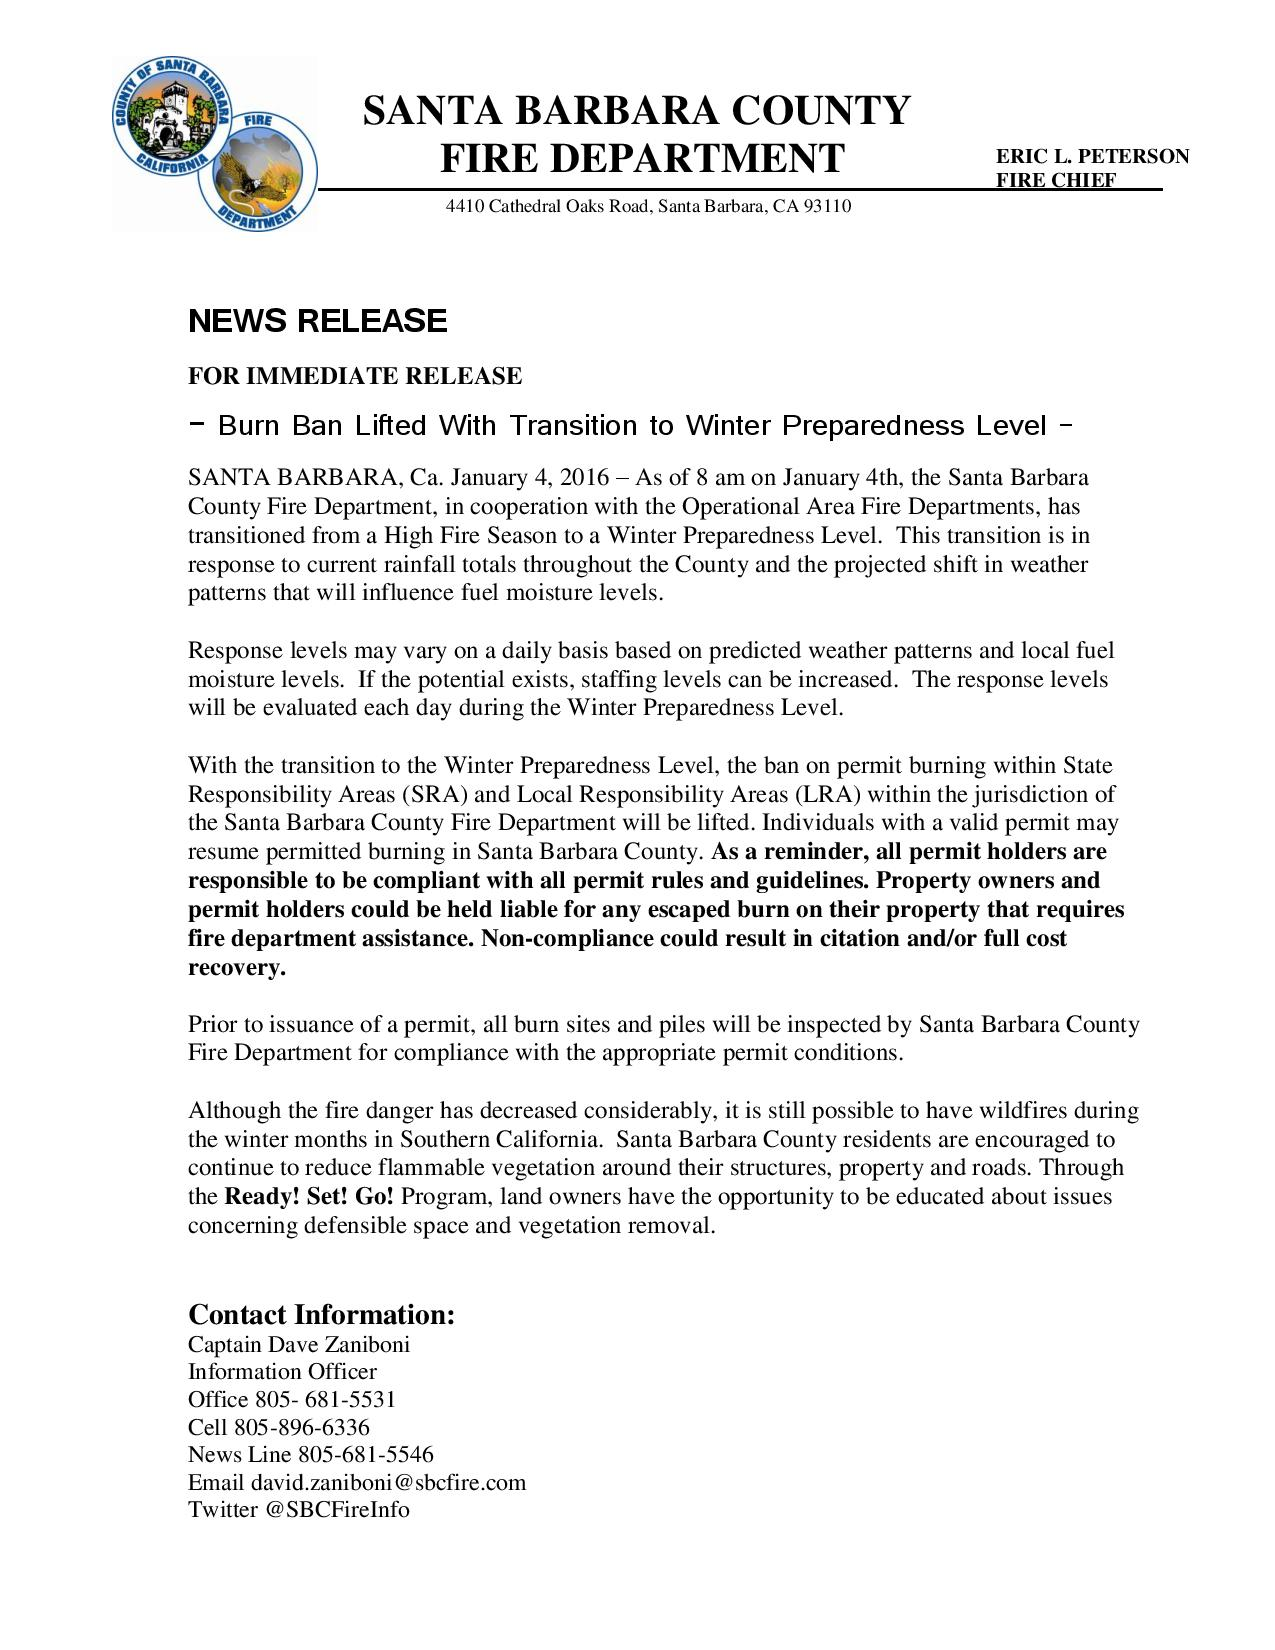 Burn Ban Lifted With Transition to Winter Preparedness Level-pg1